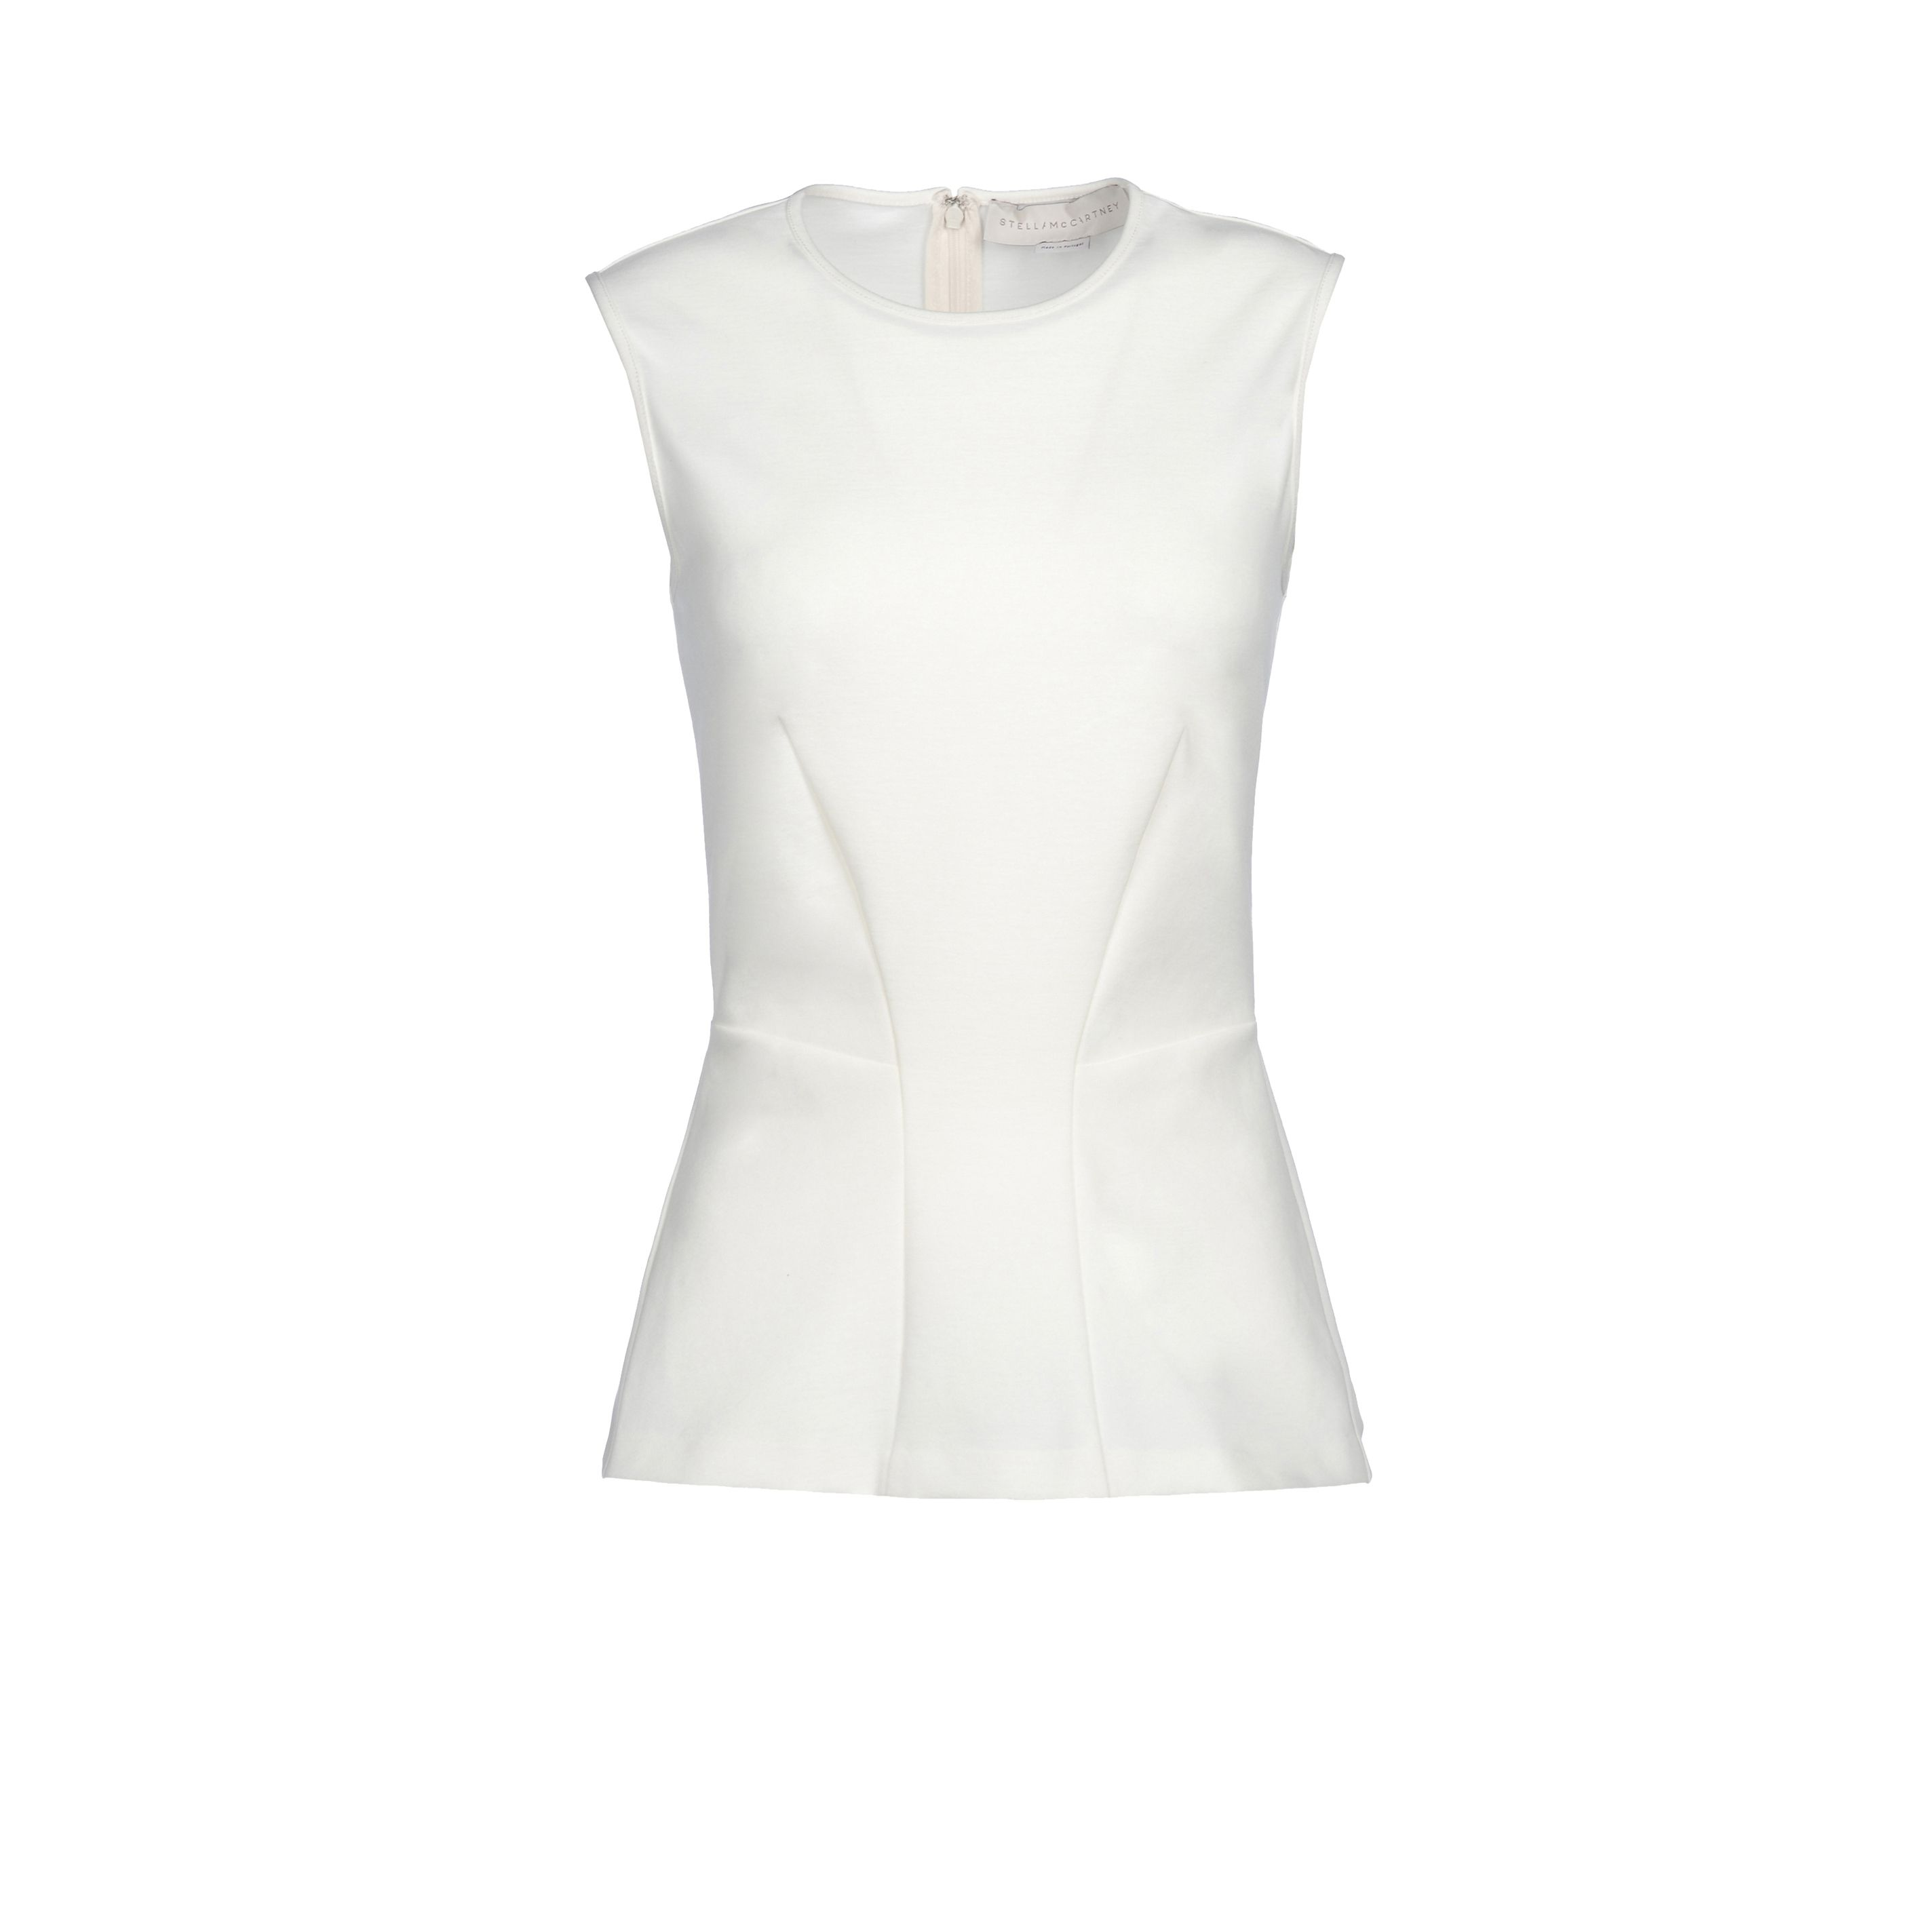 Stella McCartney - Compact Jersey Top - Shop at the official Online Store